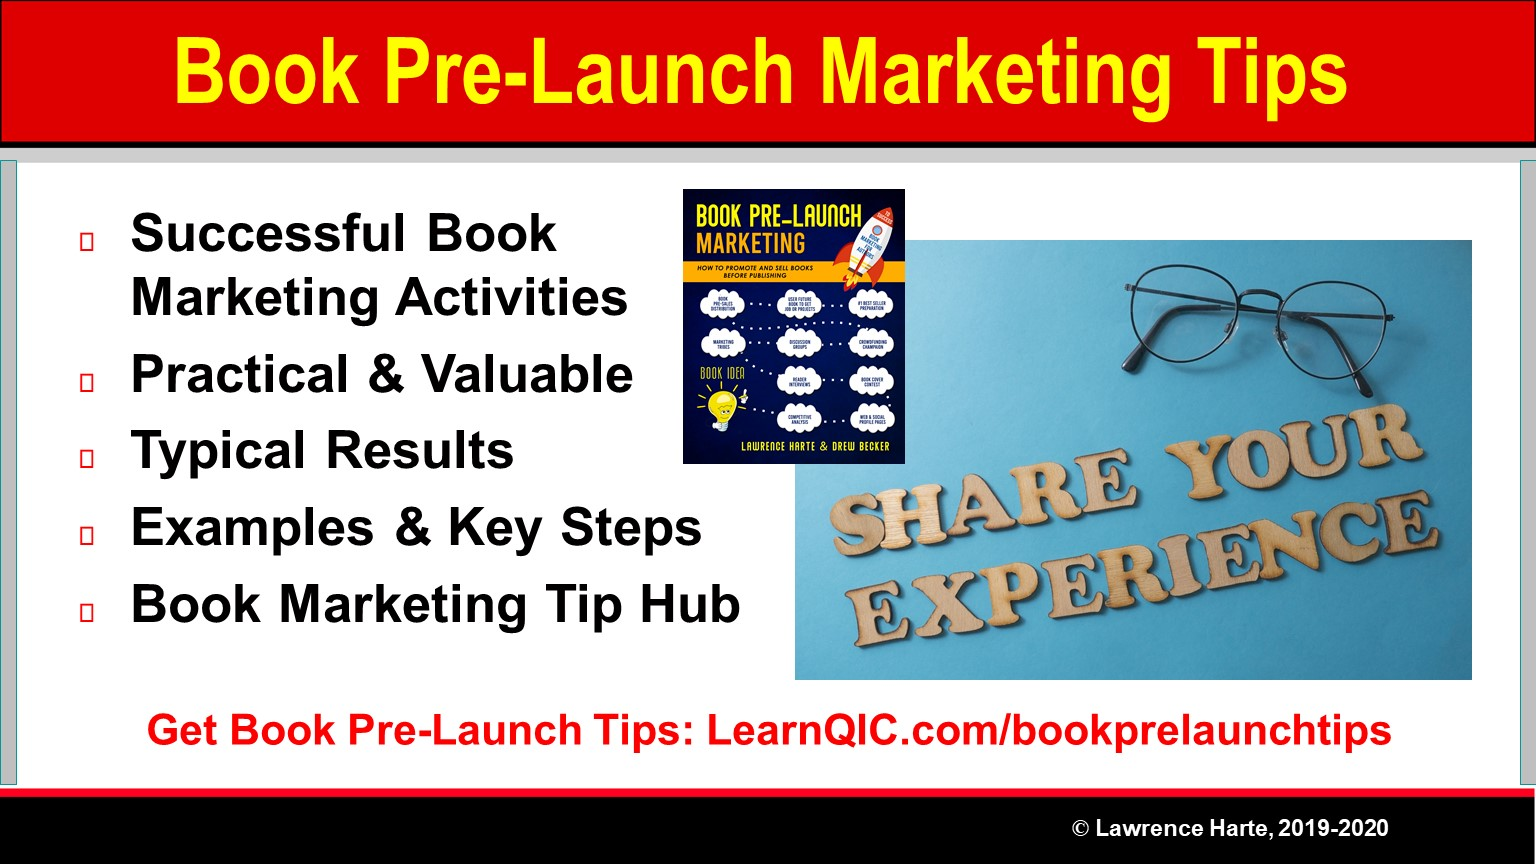 Book Pre-Launch Marketing Tips